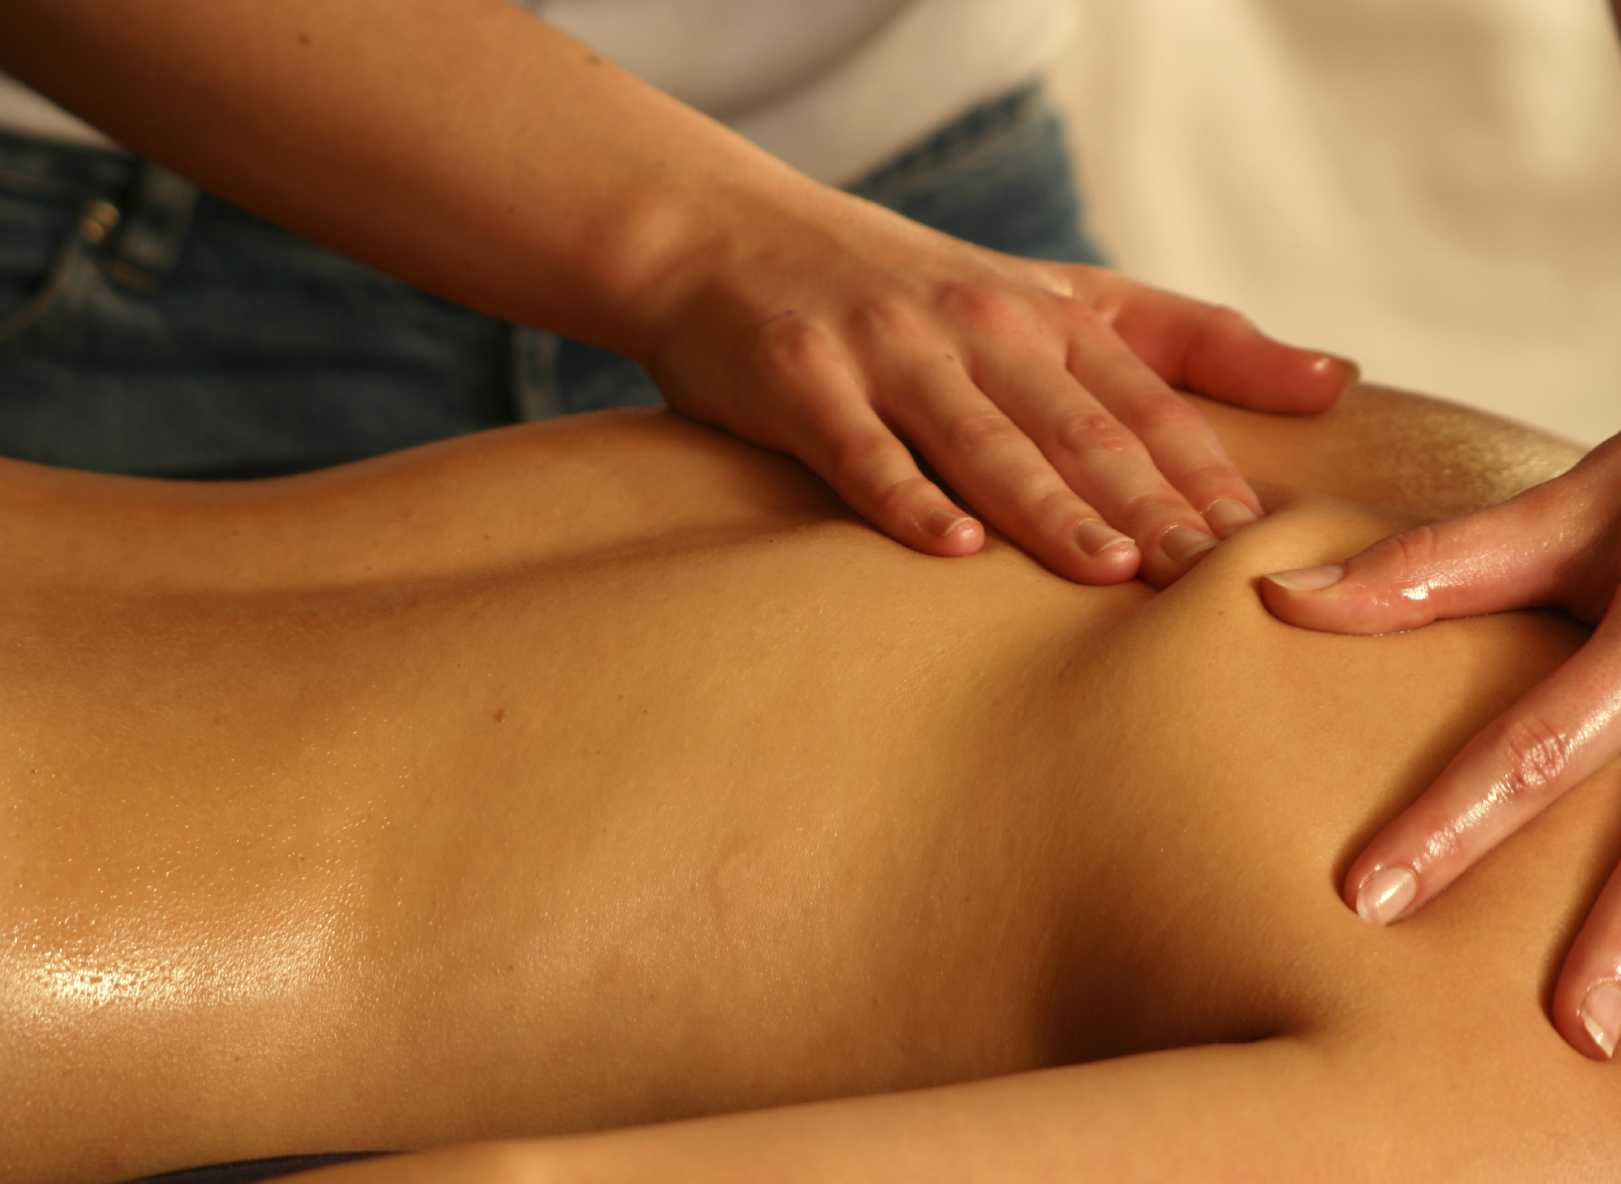 Massage with active and passive joint movement